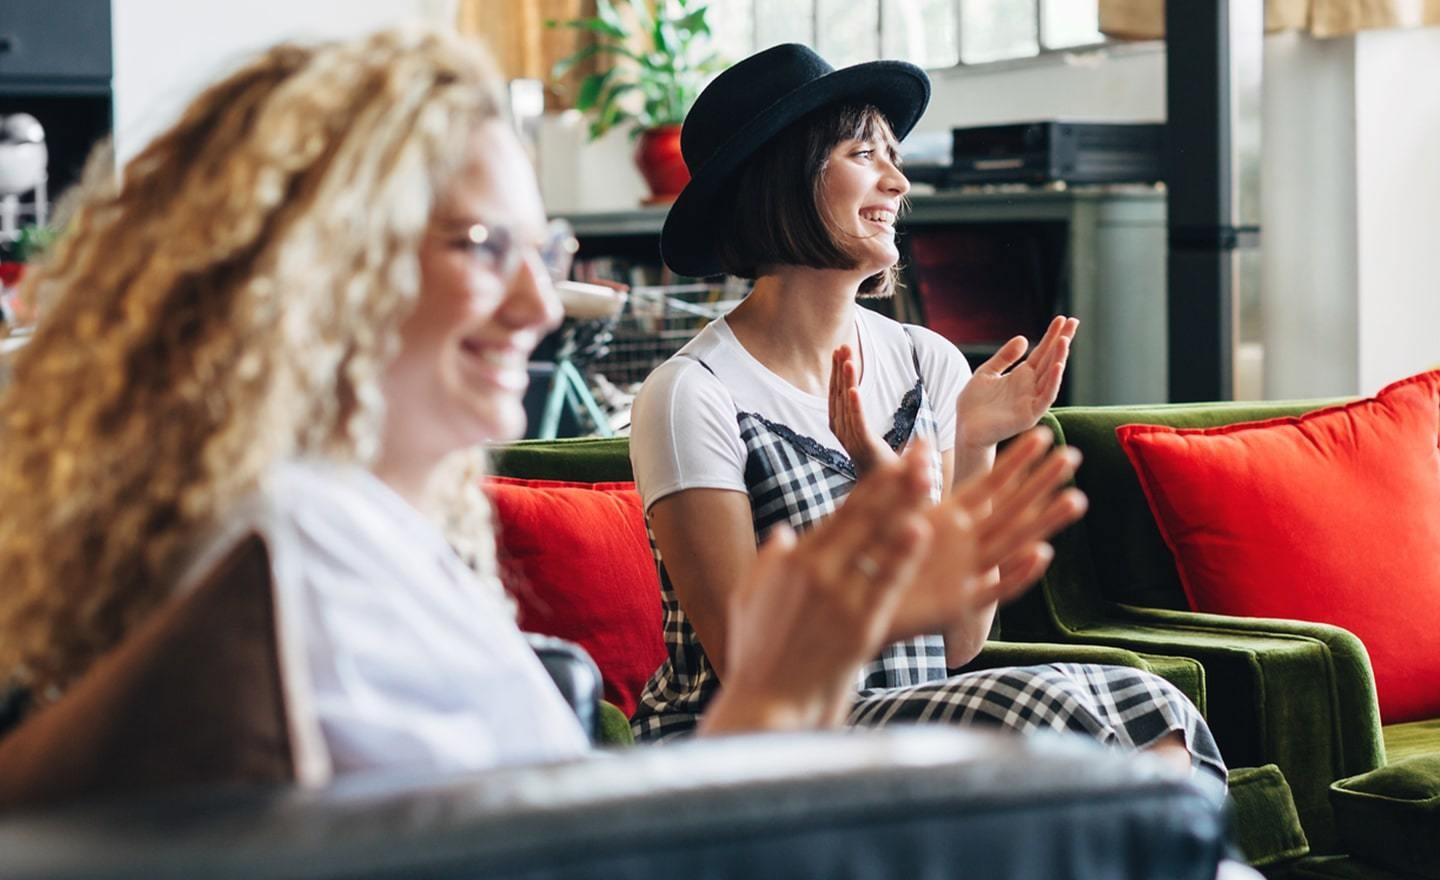 Two women sitting on couch clapping